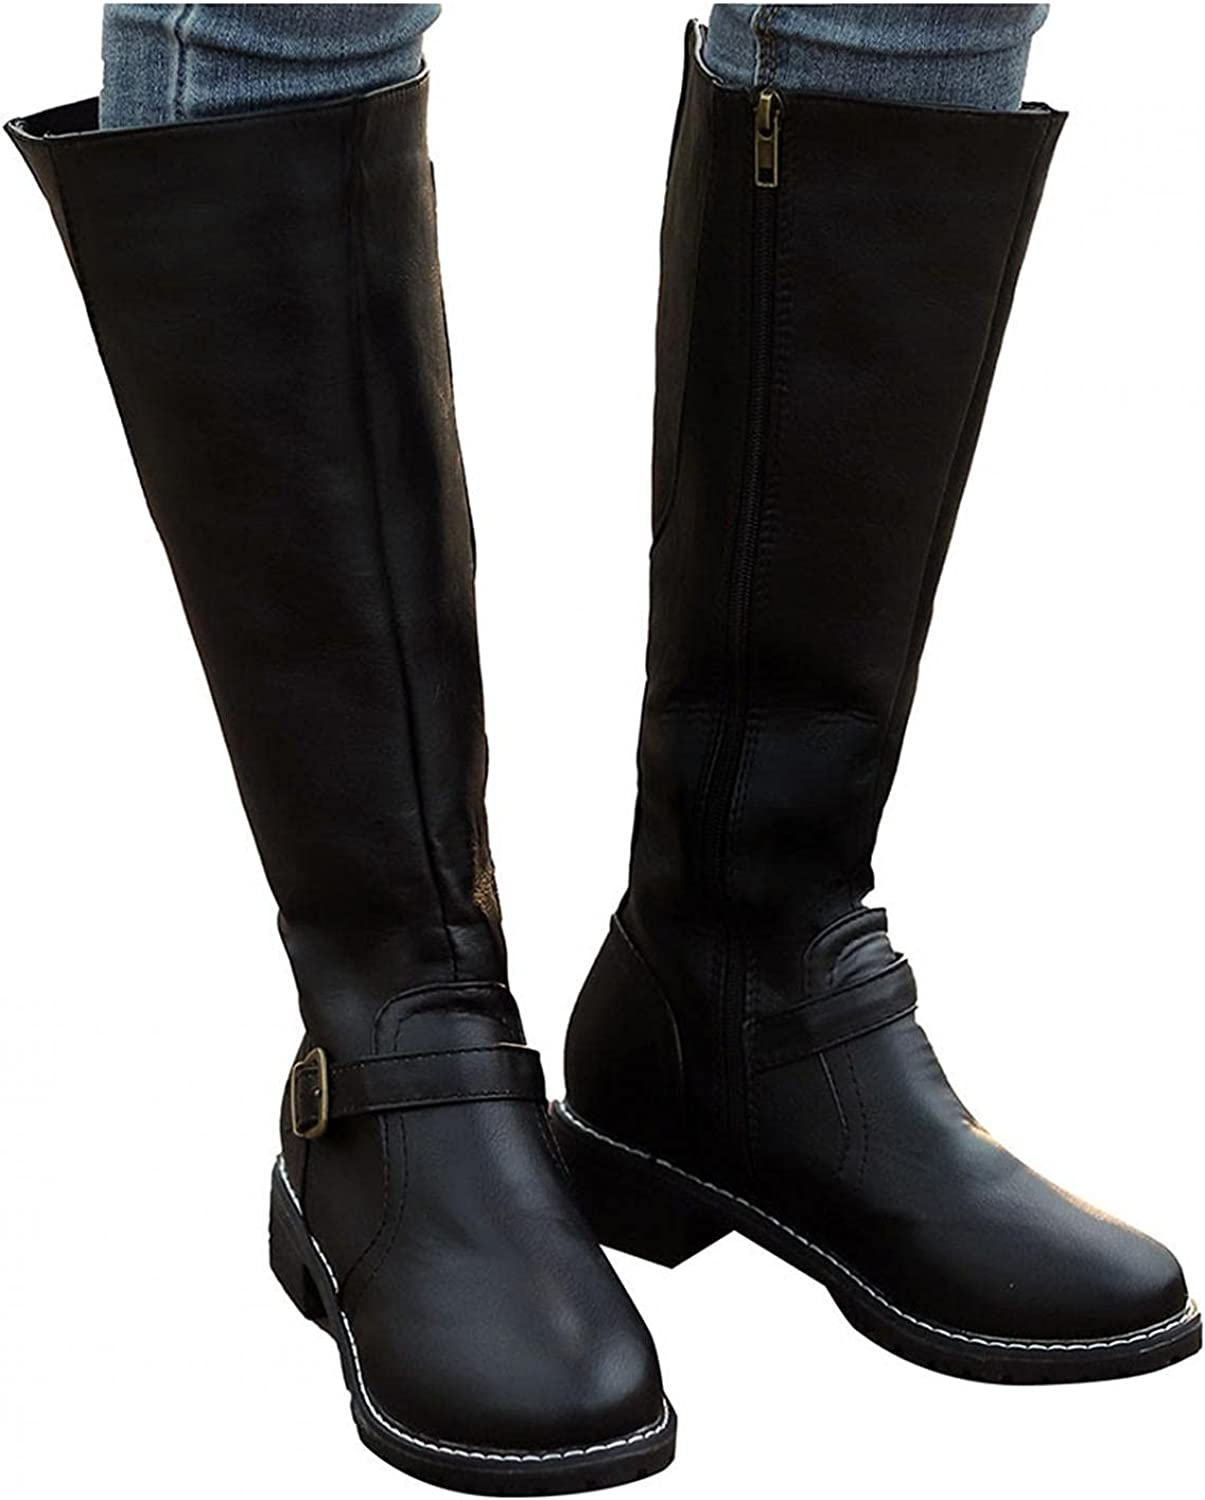 Eduavar NEW Boots safety for Women Womens Fashion Knee High Calf Wide Boot